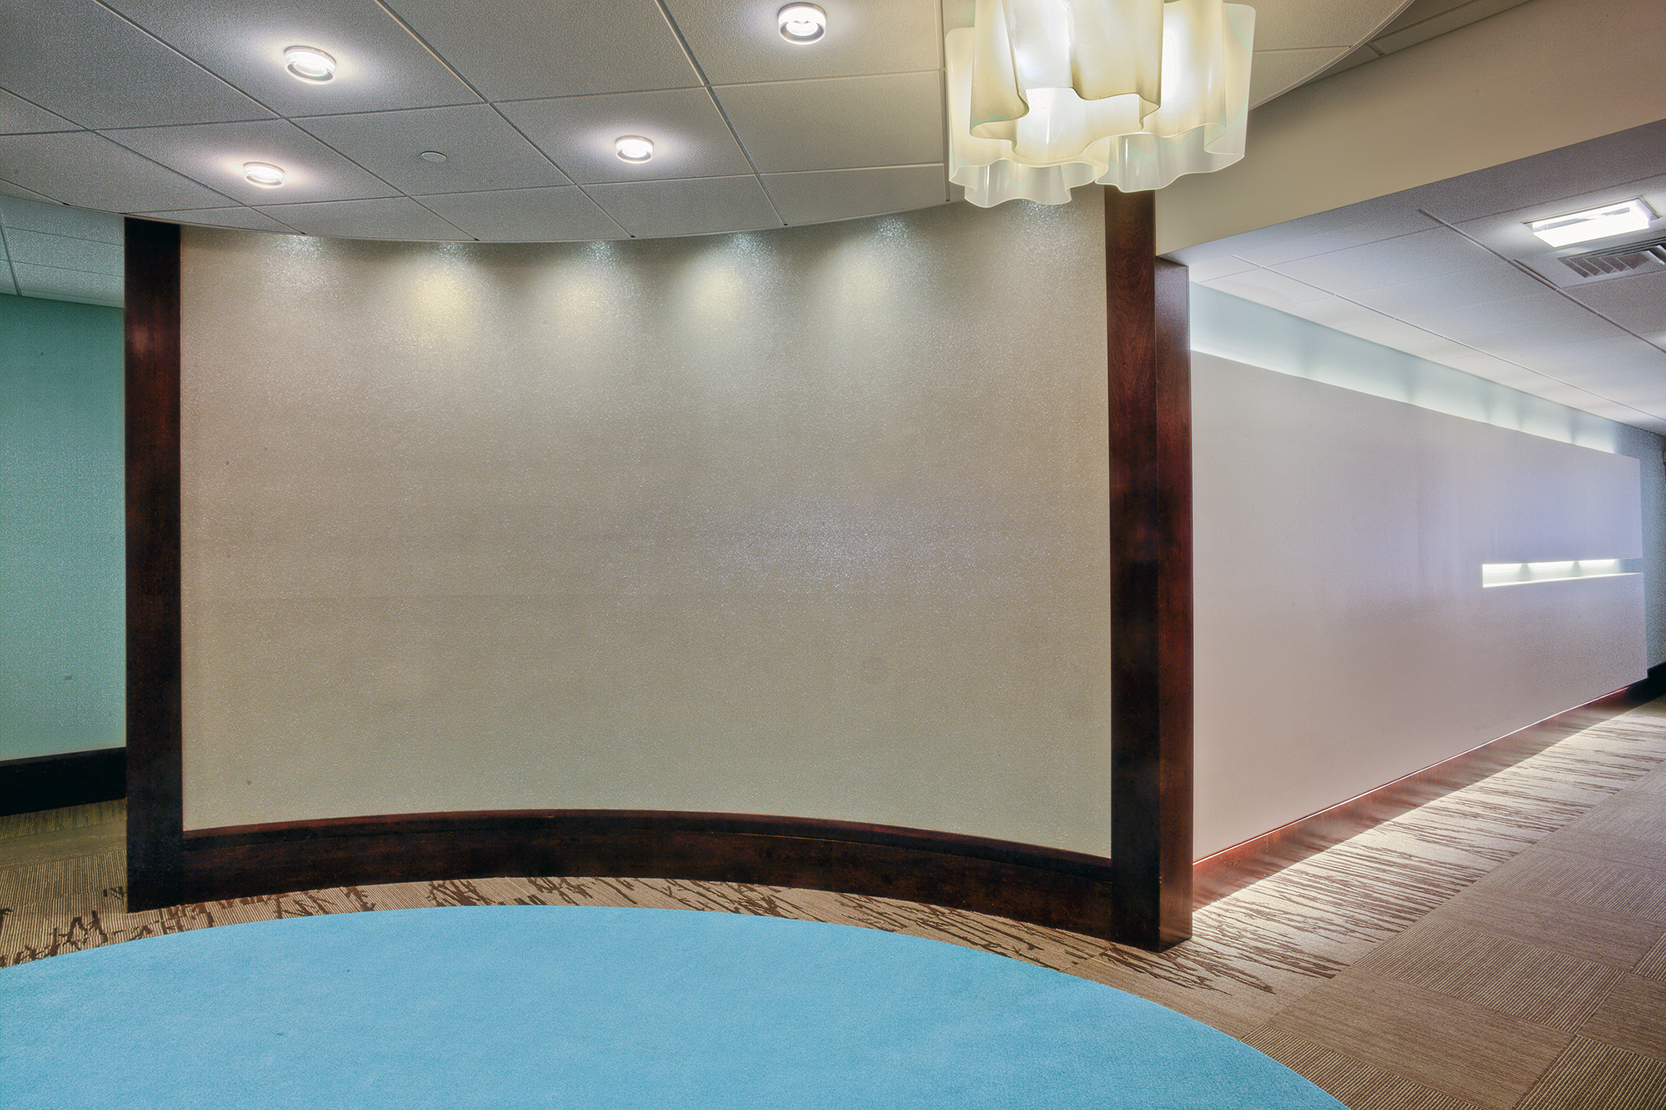 The sparkling curved wall adds the illusion of space at the end of the long hall.